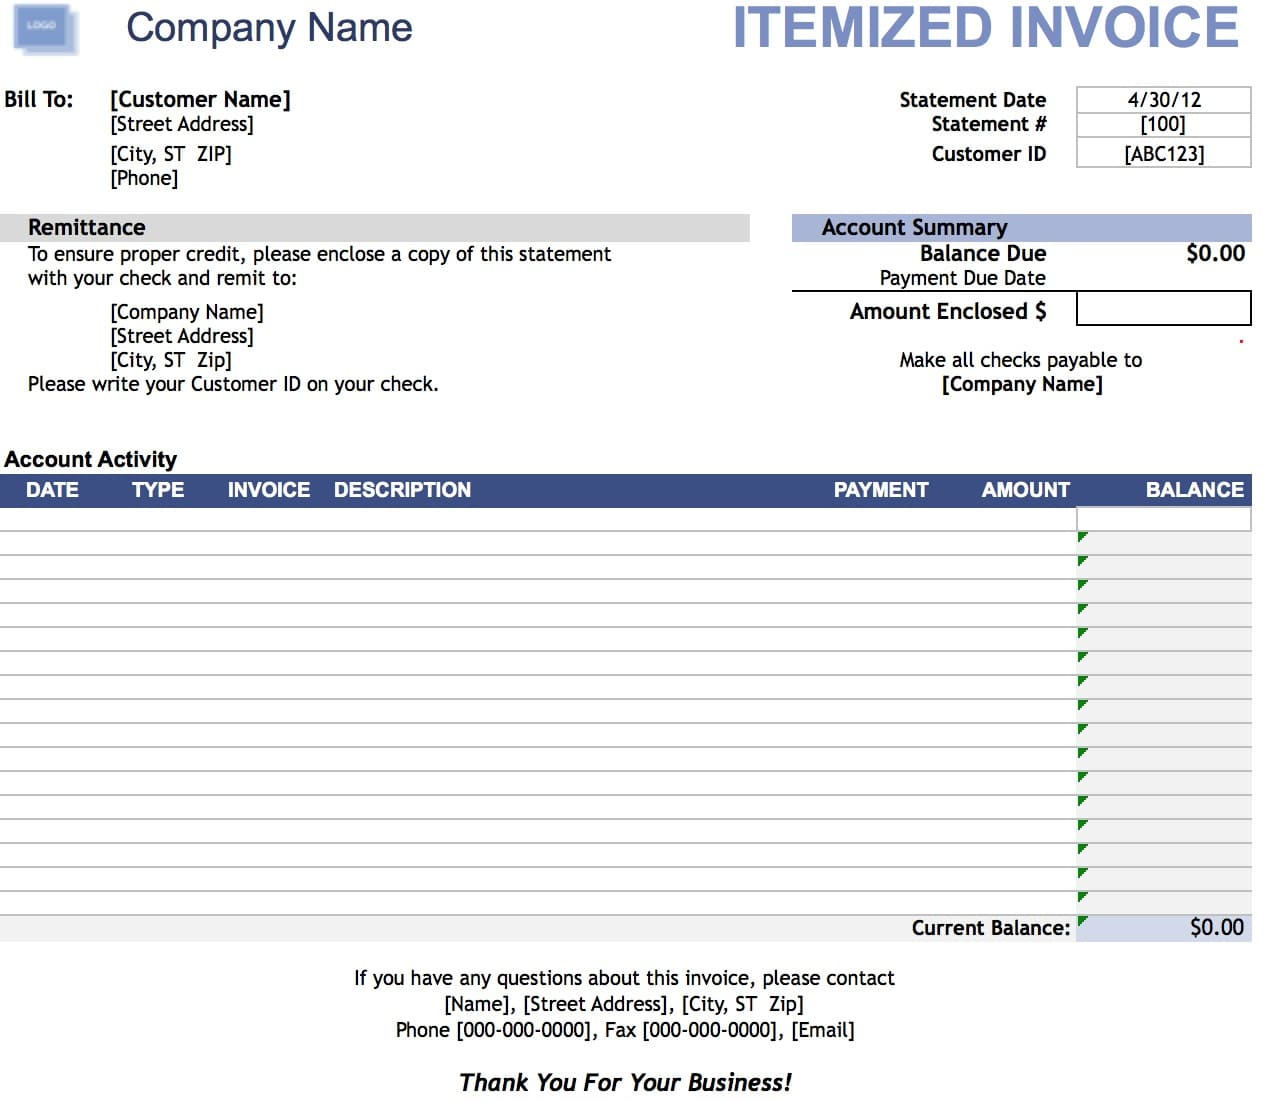 Free itemized invoice template excel pdf word c wajeb Image collections